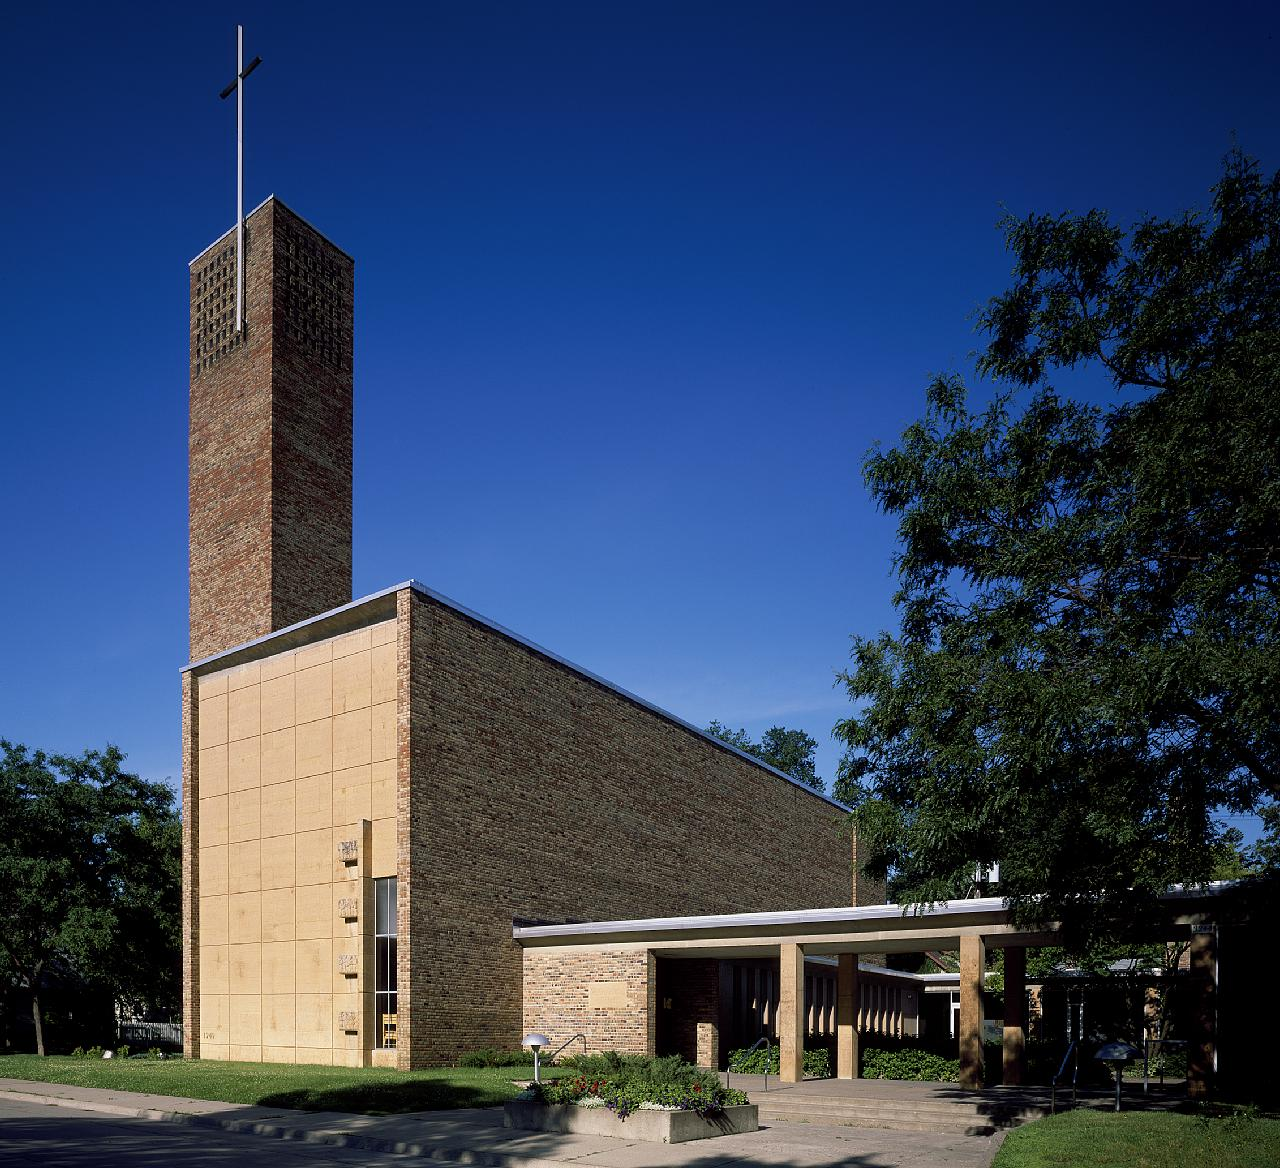 Christ Church Lutheran was built in 1949 and is recognized as one of Eliel Saarinen's greatest works.